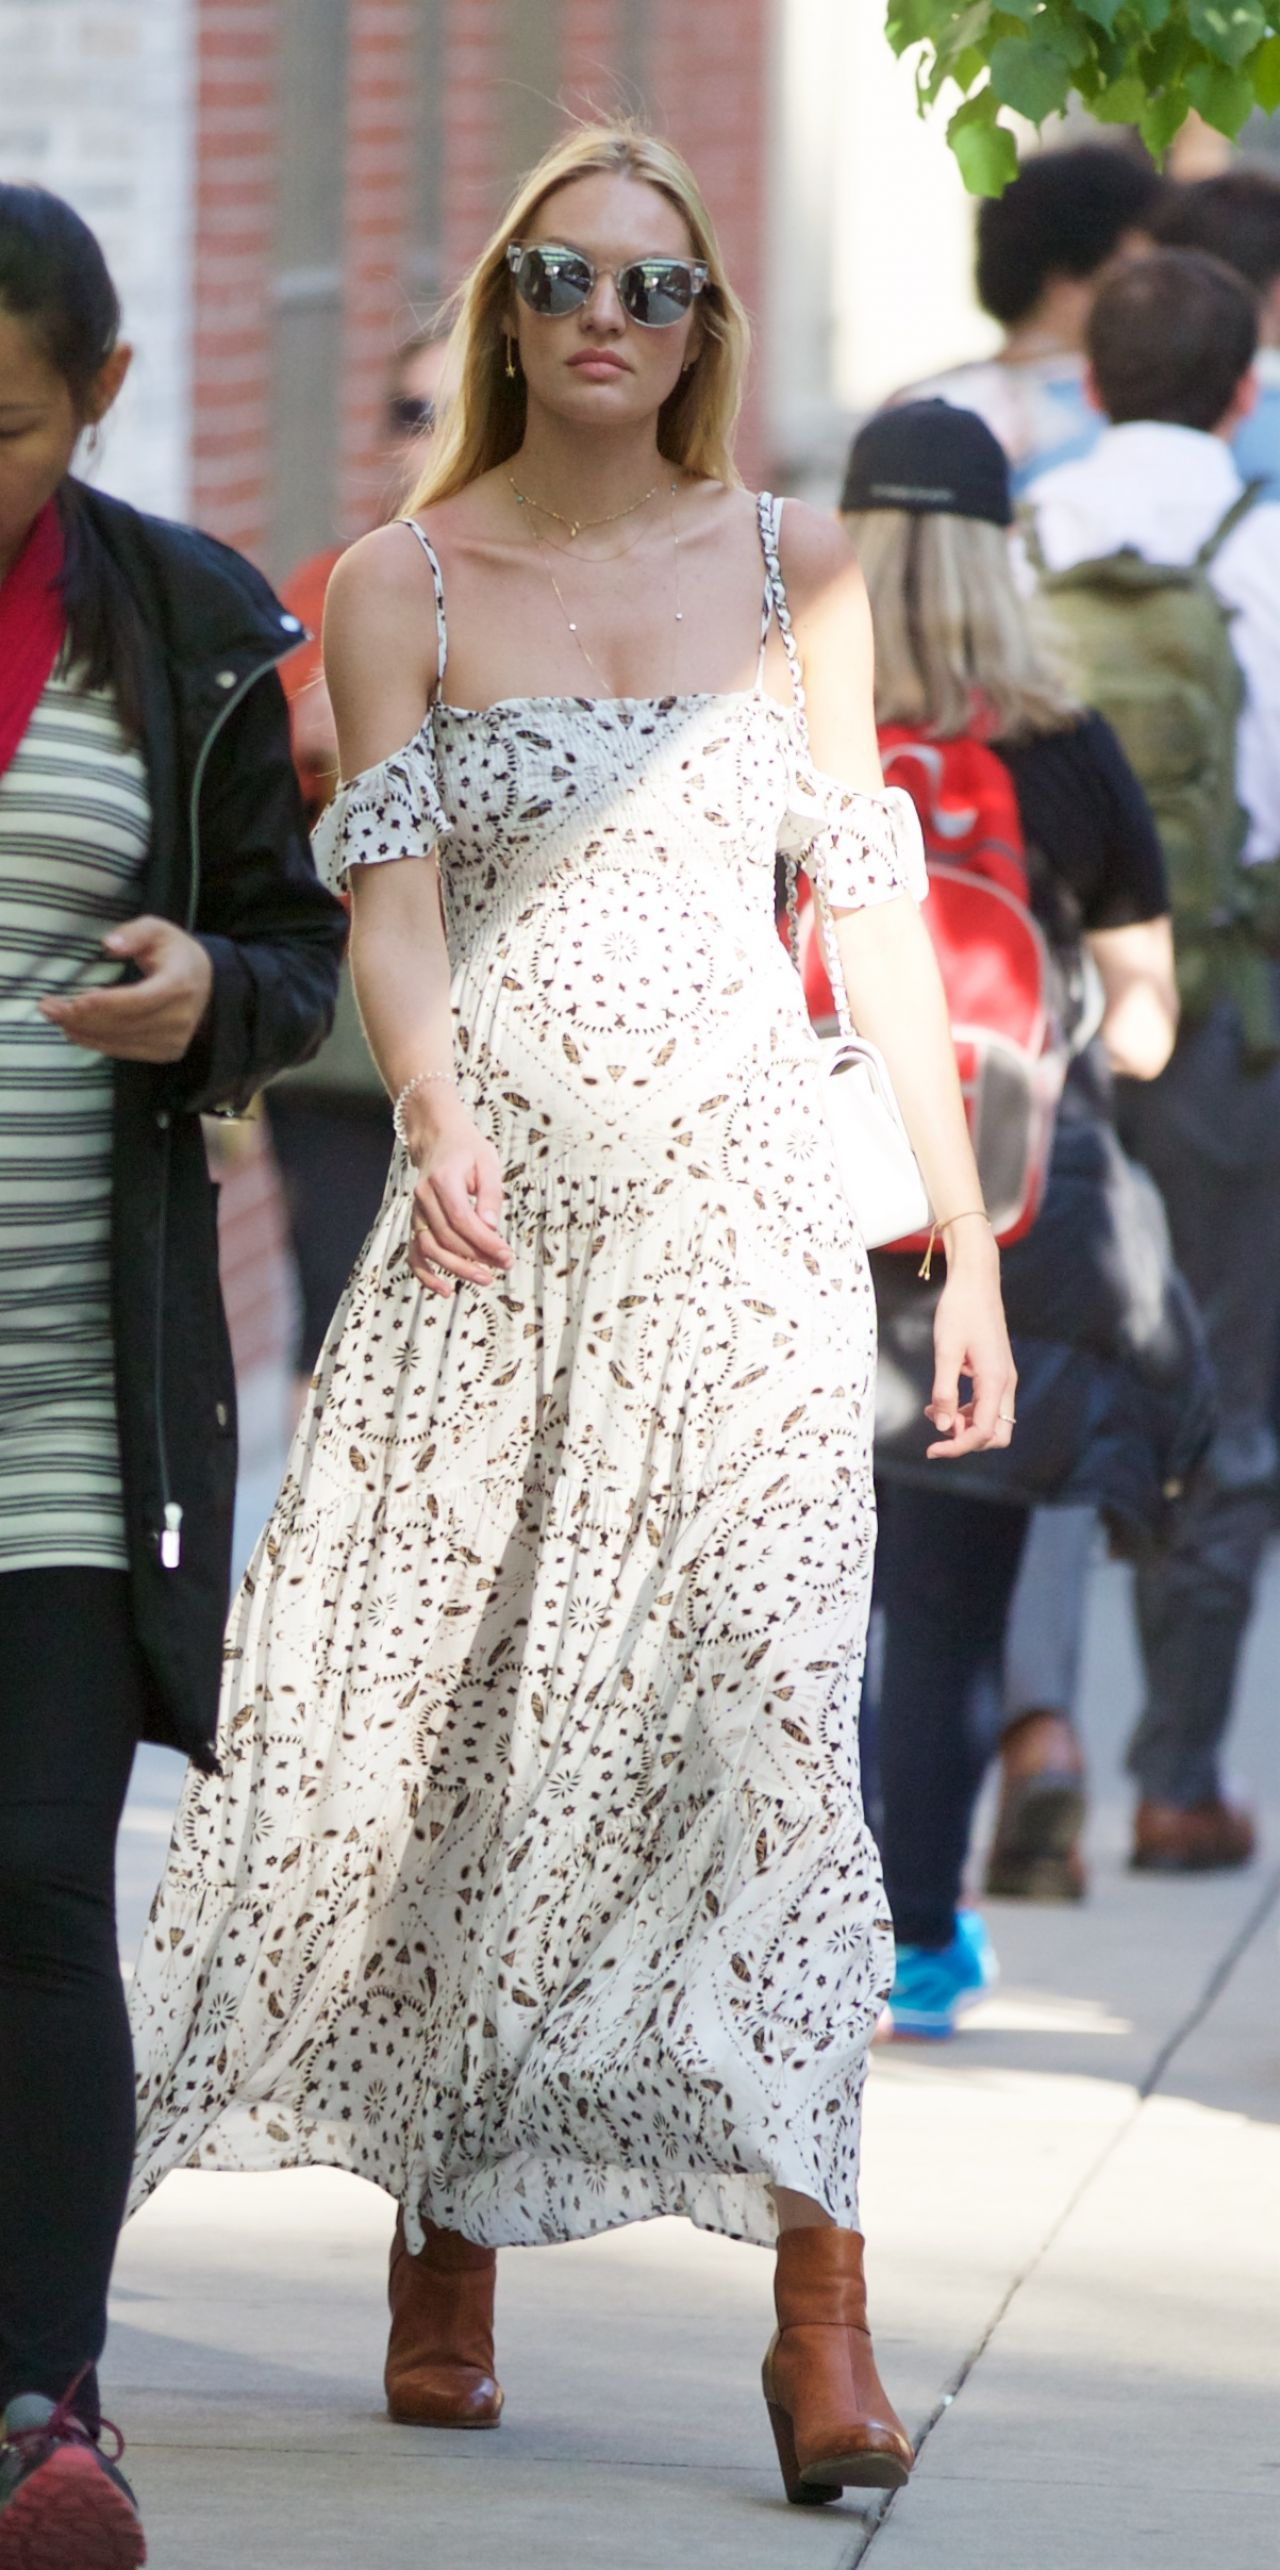 candice-swanepoel-spring-outfit-ideas-out-in-nyc-5-11-2016-12.jpg 1280 × 2570 bildepunkter